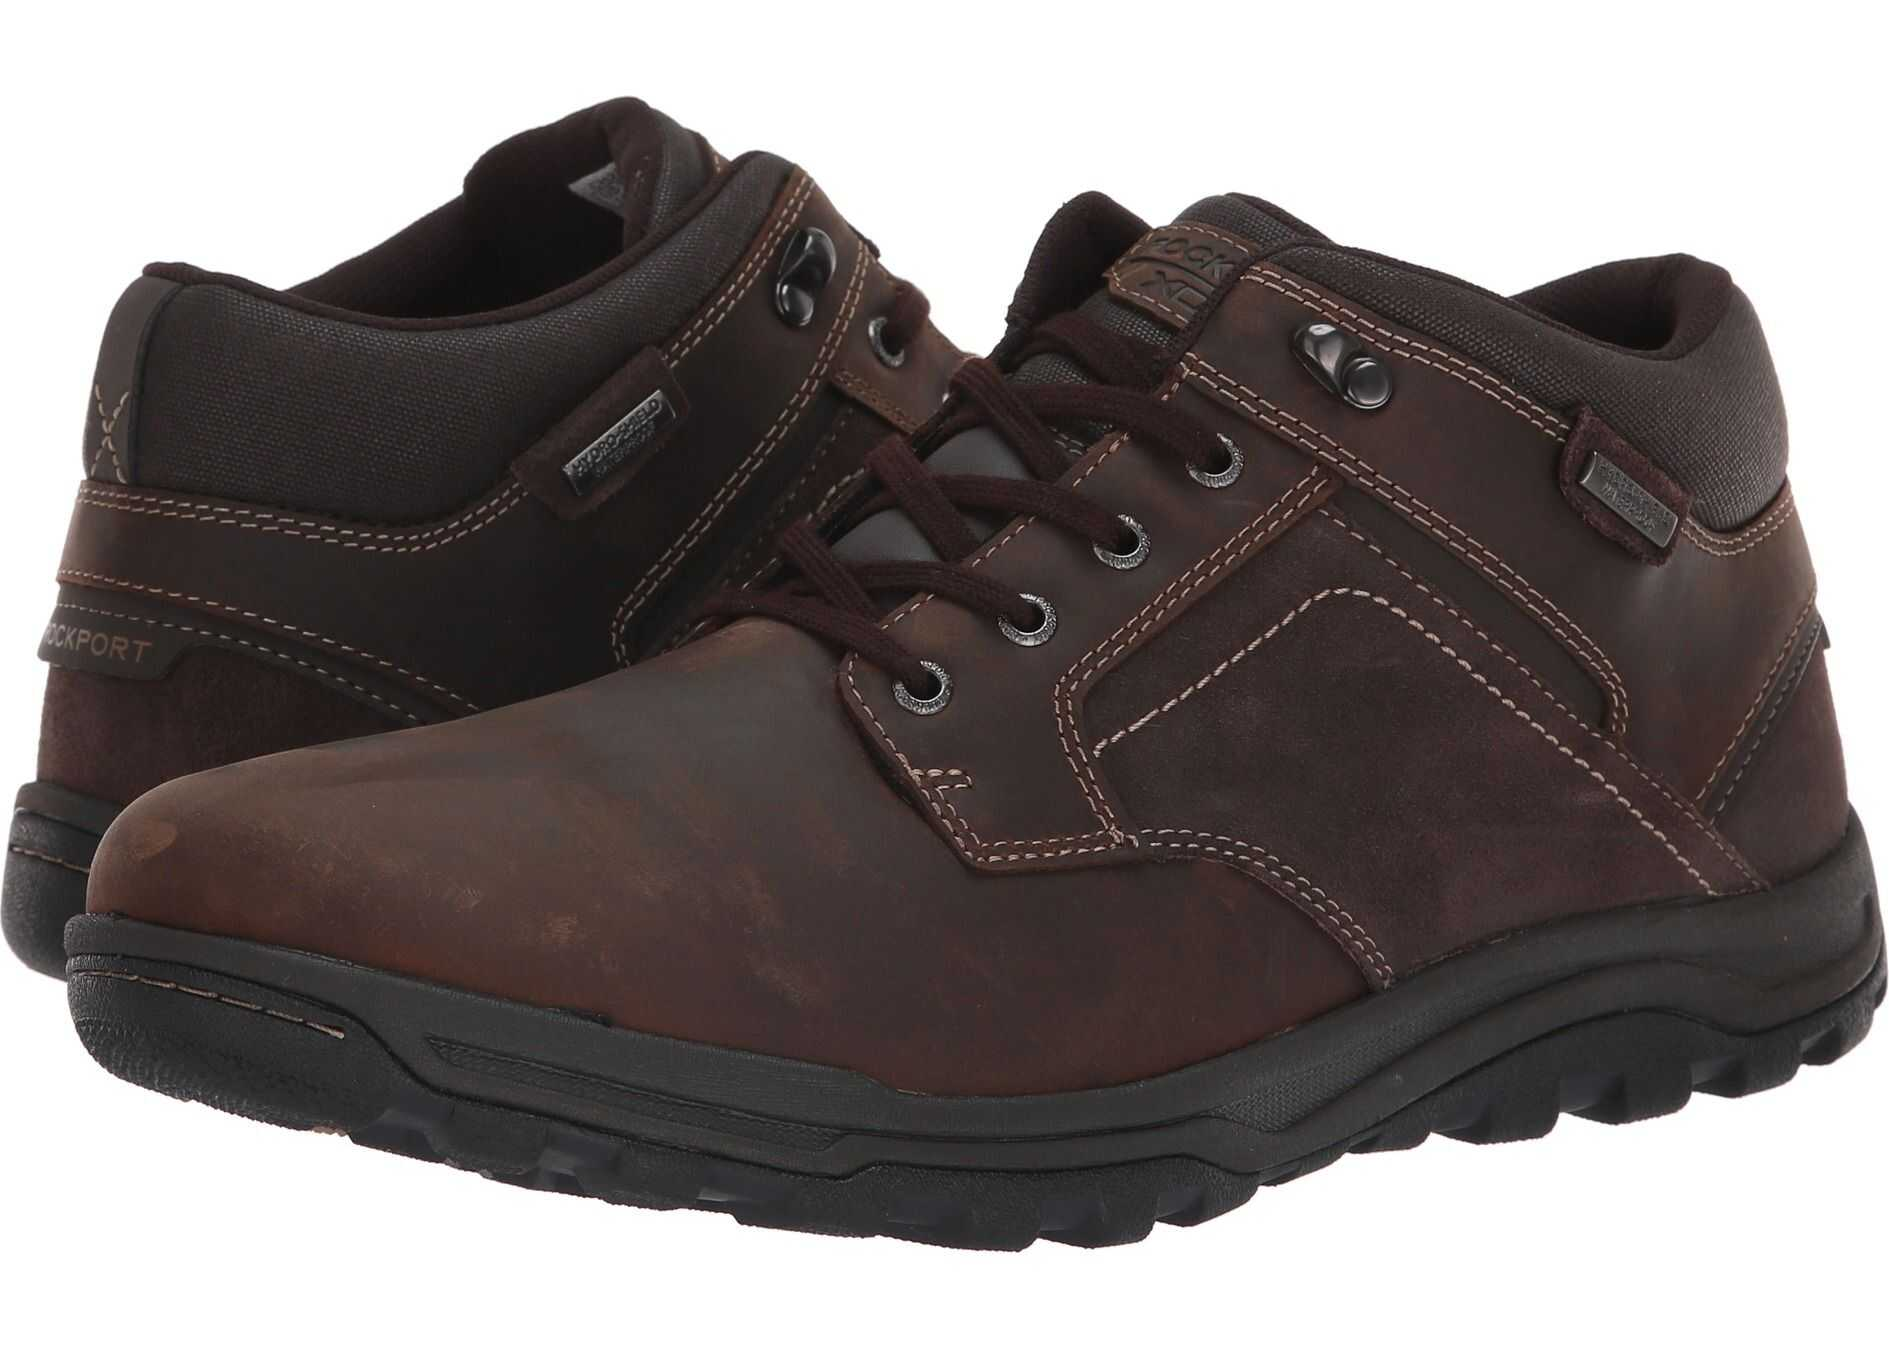 Rockport Harlee Waterproof Chukka Brown